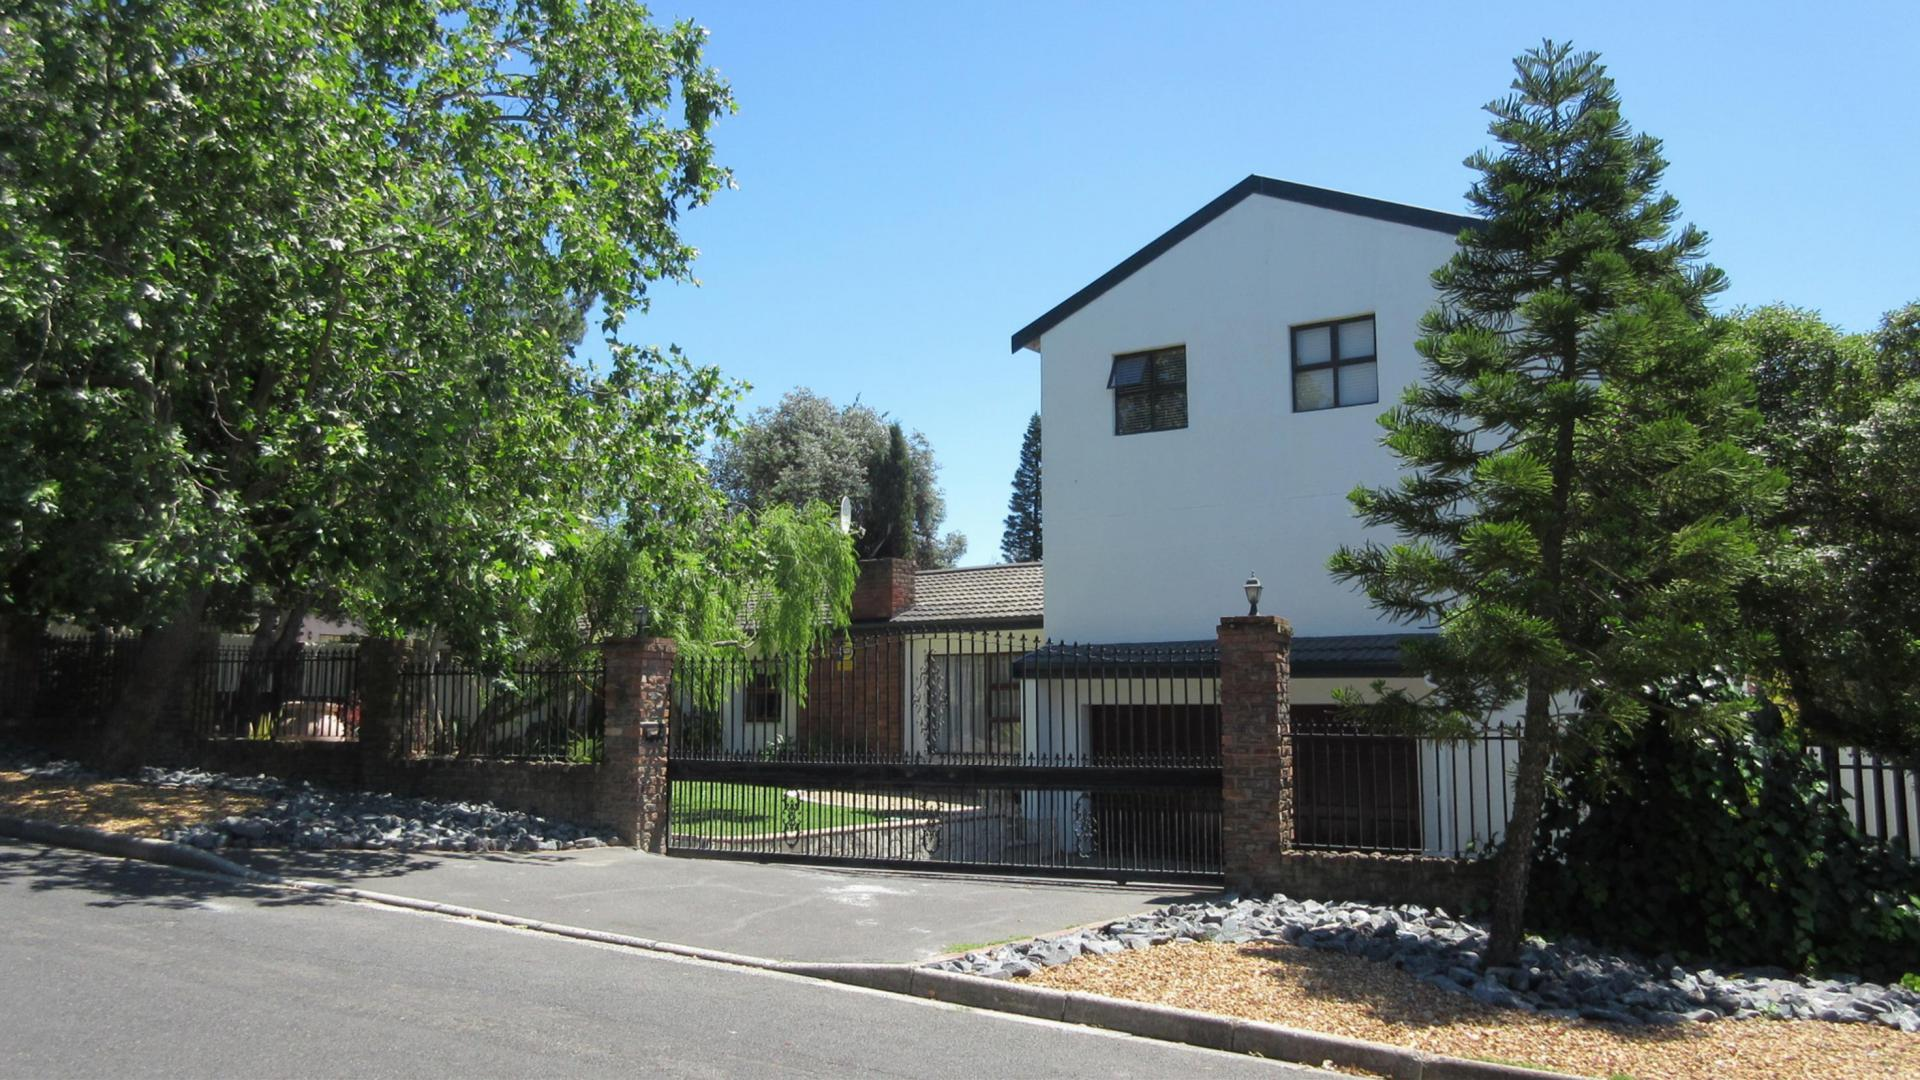 property for sale in capetown - northern suburbs - myroof.co.za